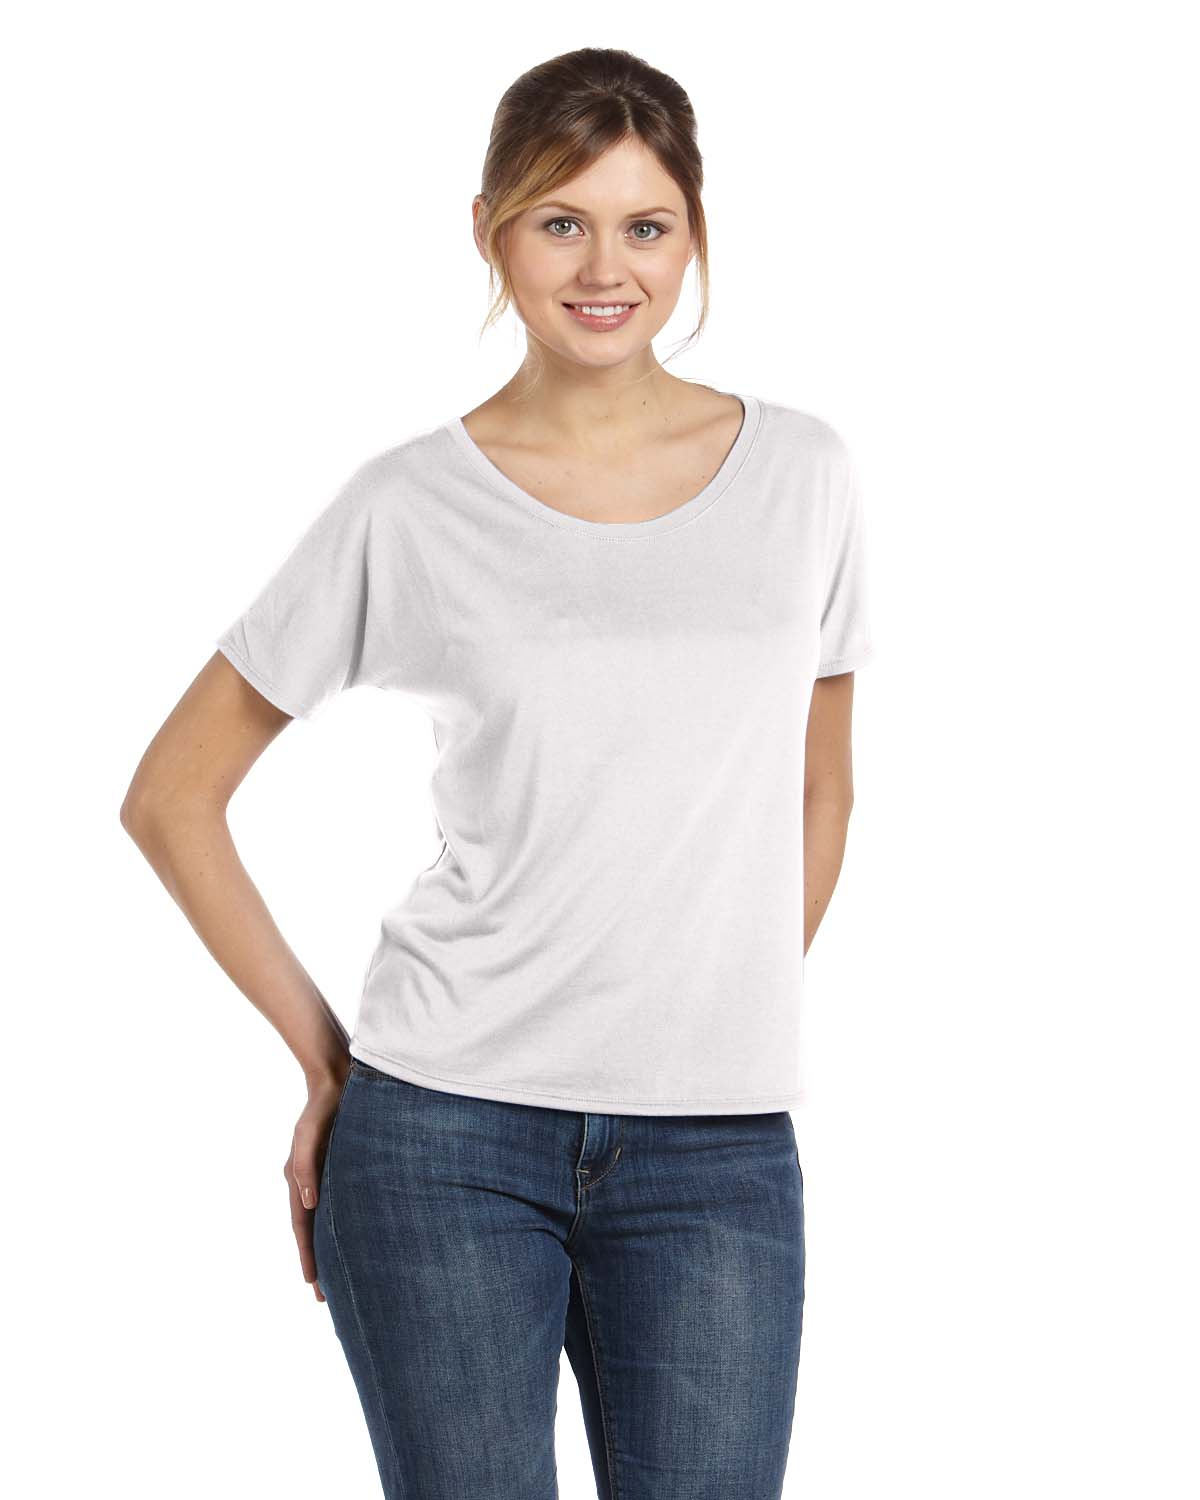 Women 39 S Flowy Simple T Shirt Shirtmax